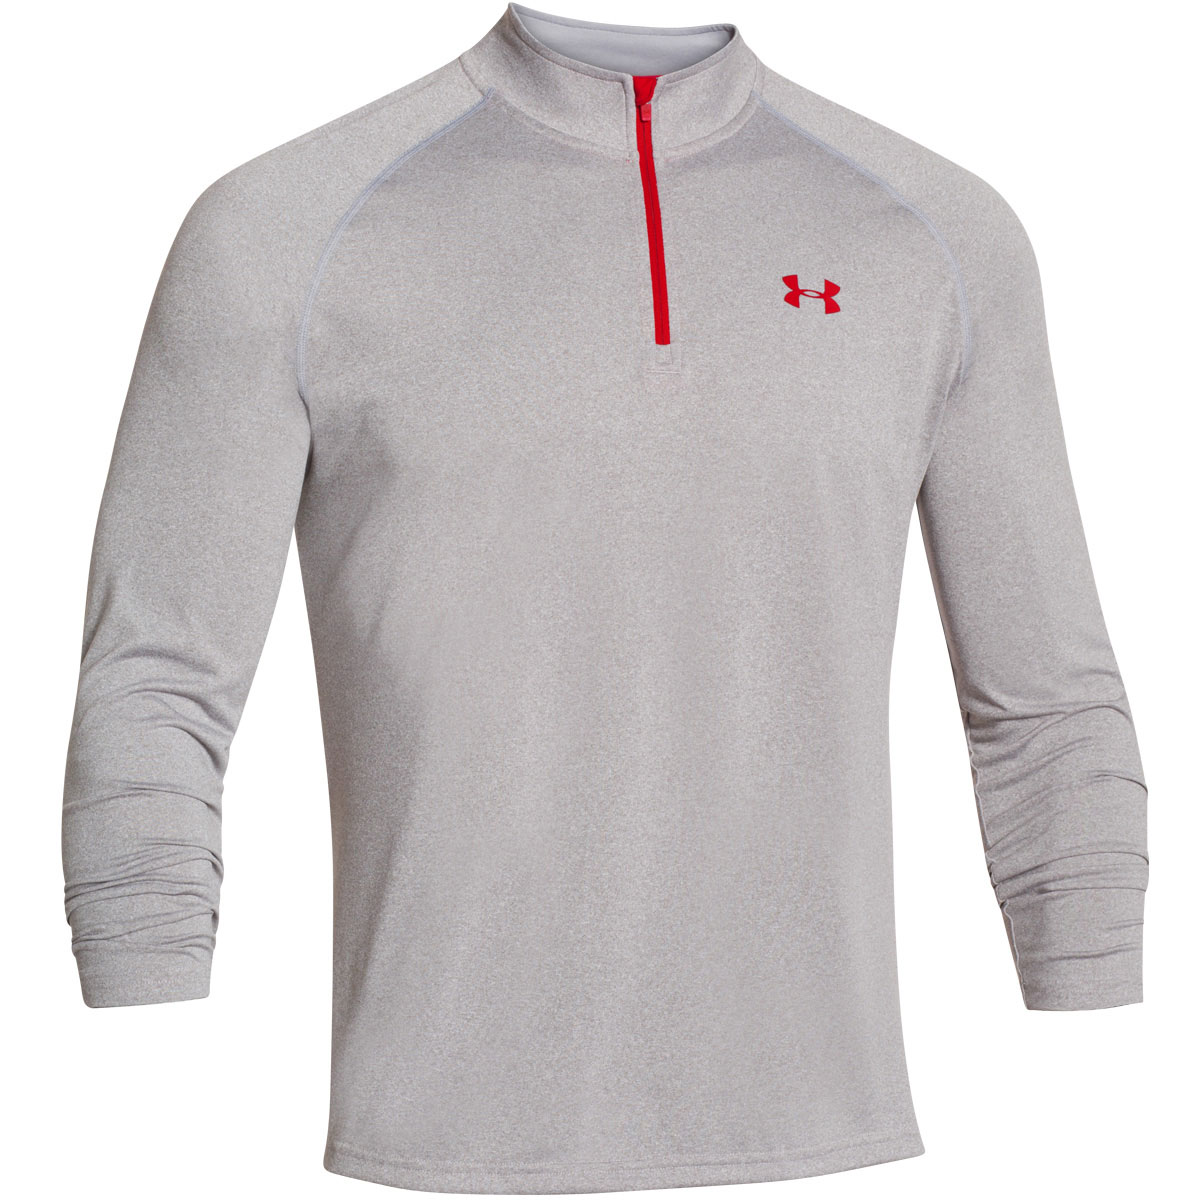 Under armour 2017 mens ua tech 1 4 zip long sleeve top gym for Under armour i will shirt